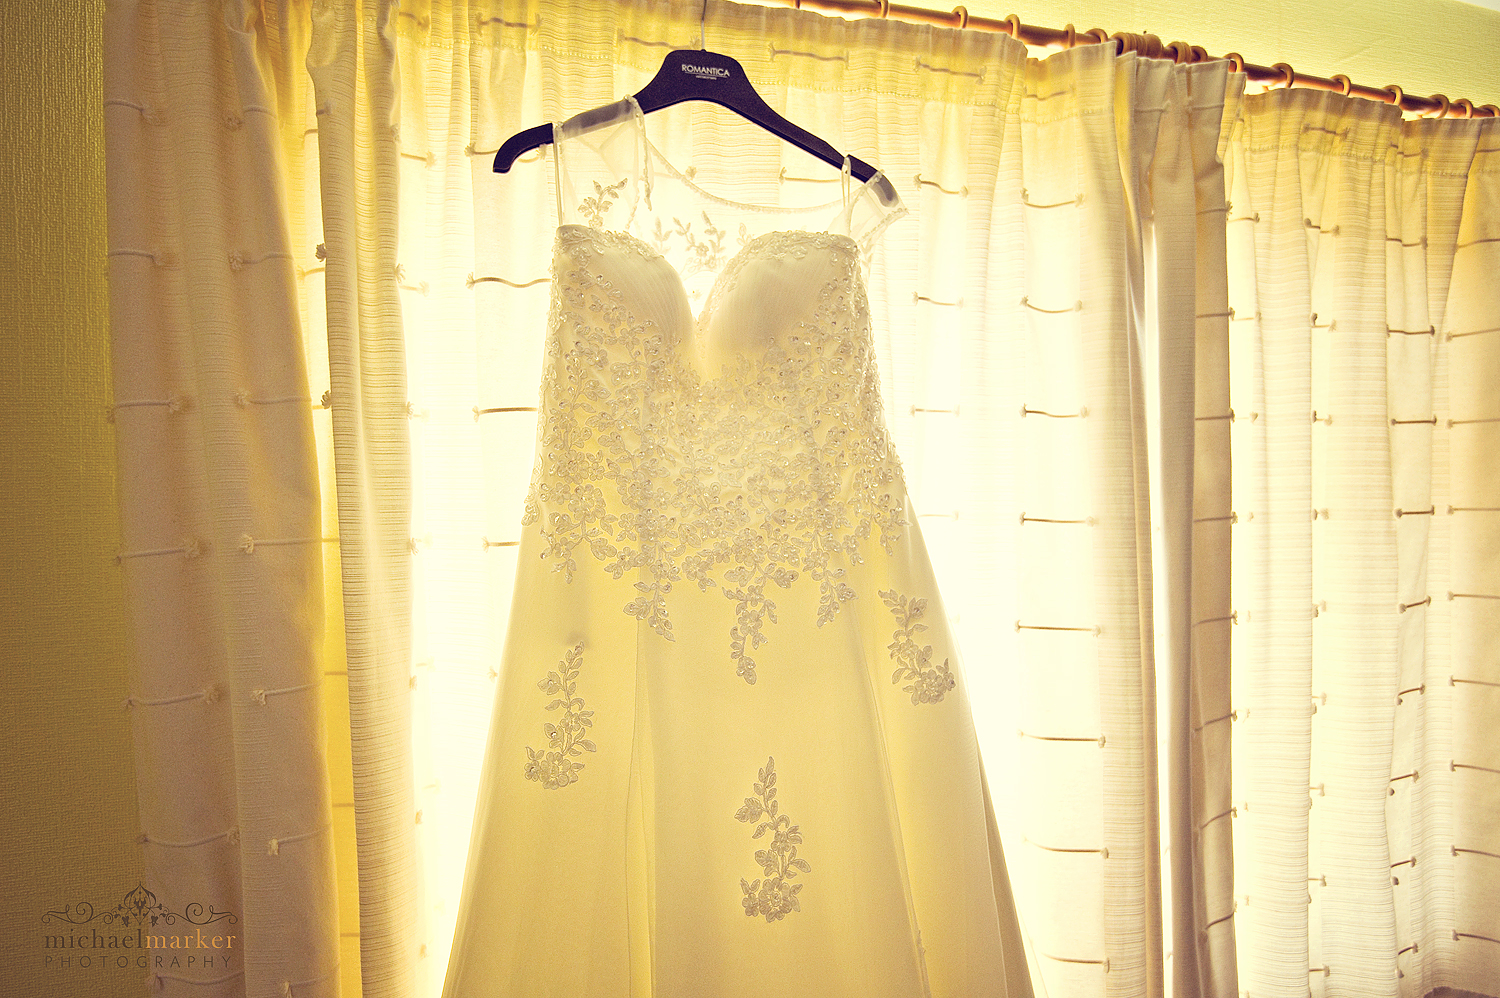 Beautiful embroidered wedding dress hanging in the window